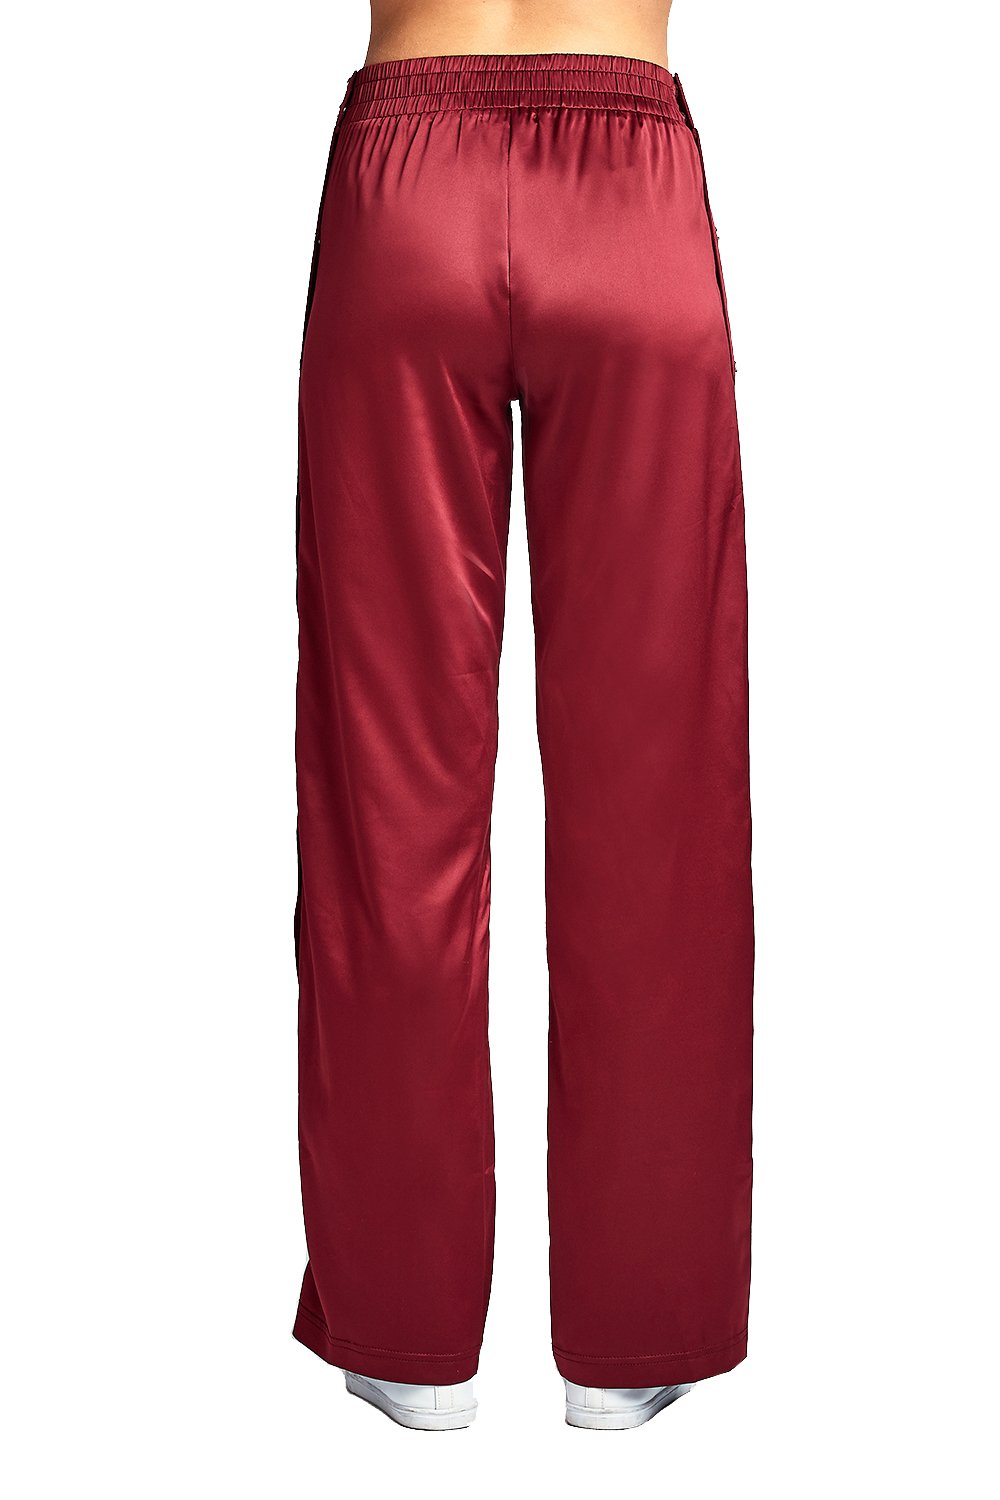 Elastic Waist Wide Leg Satin Side Snap-On Track Tearaway Long Pants